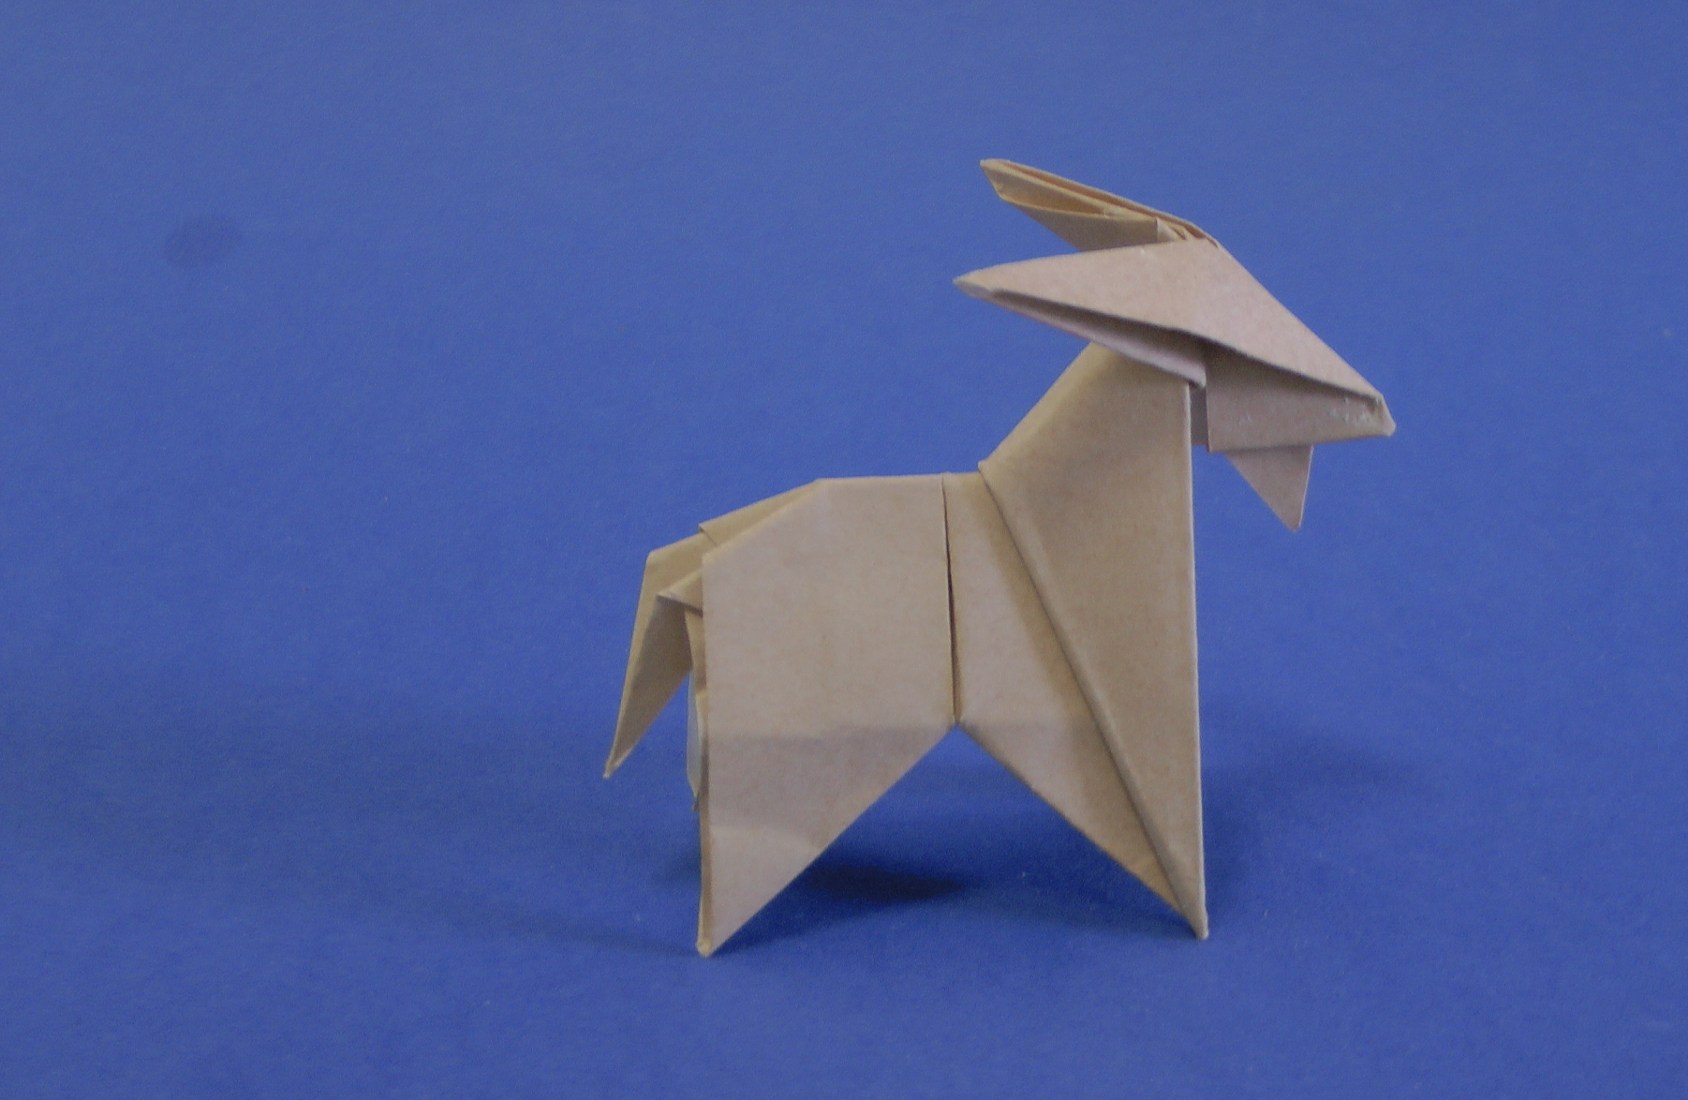 Origami Archives Tavins To Fold Mouse From The Paper Diagram Of Themouse Goat